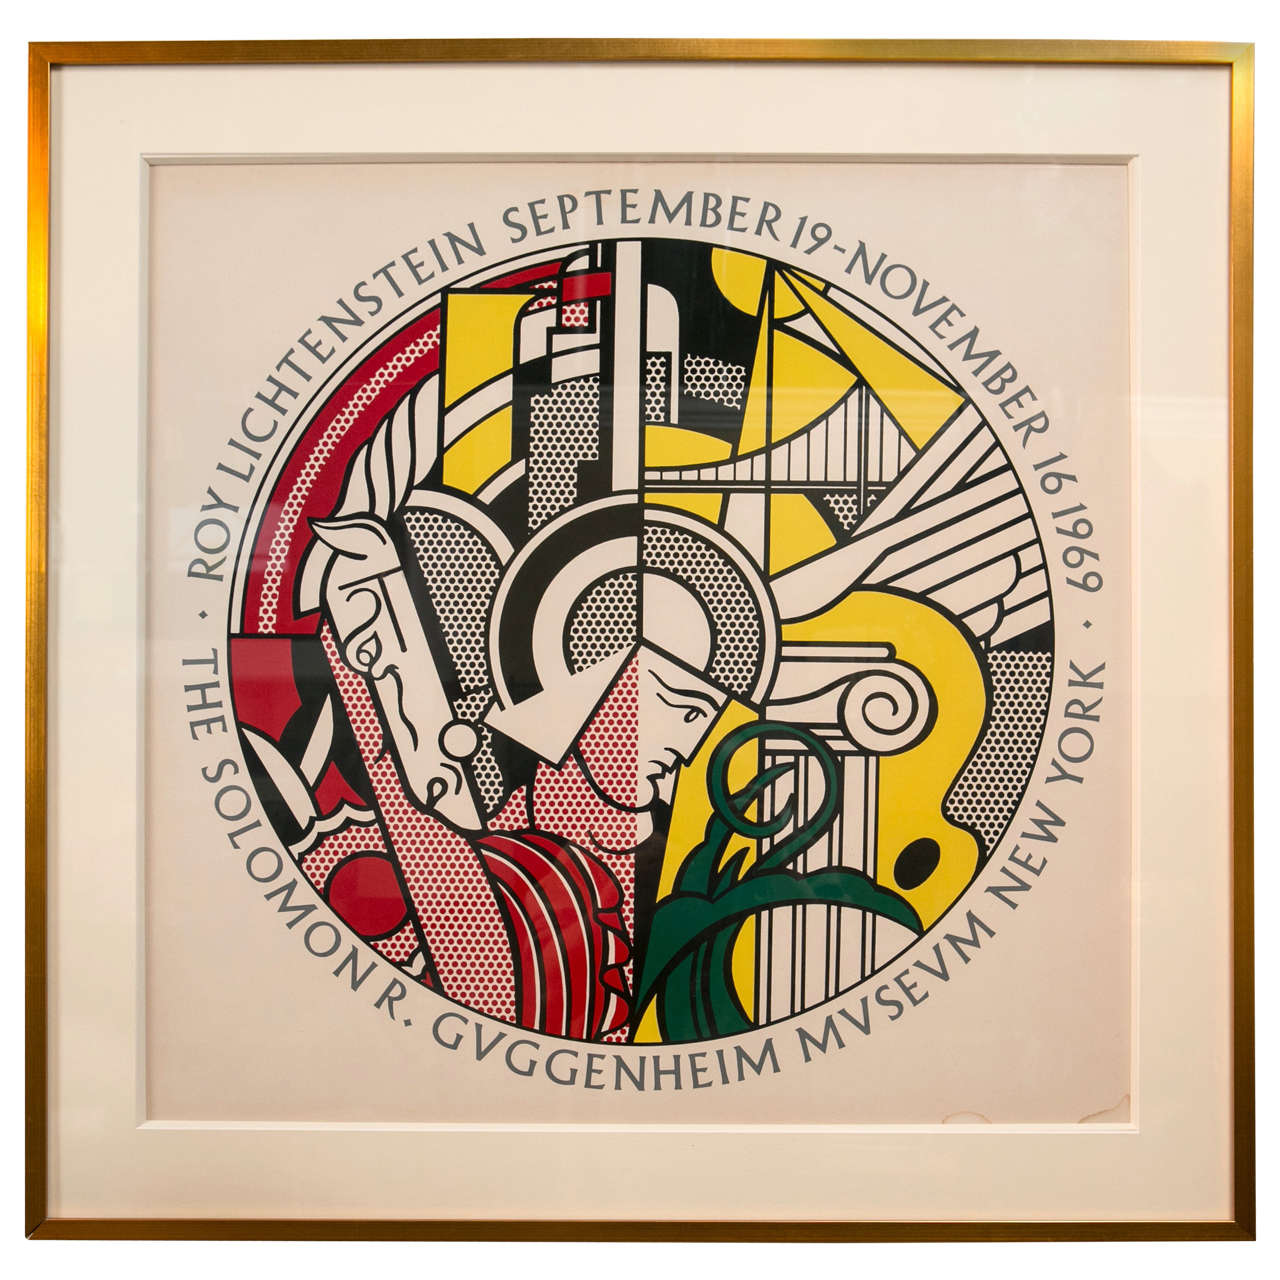 Roy lichtenstein poster for sale at 1stdibs for Poster roy lichtenstein